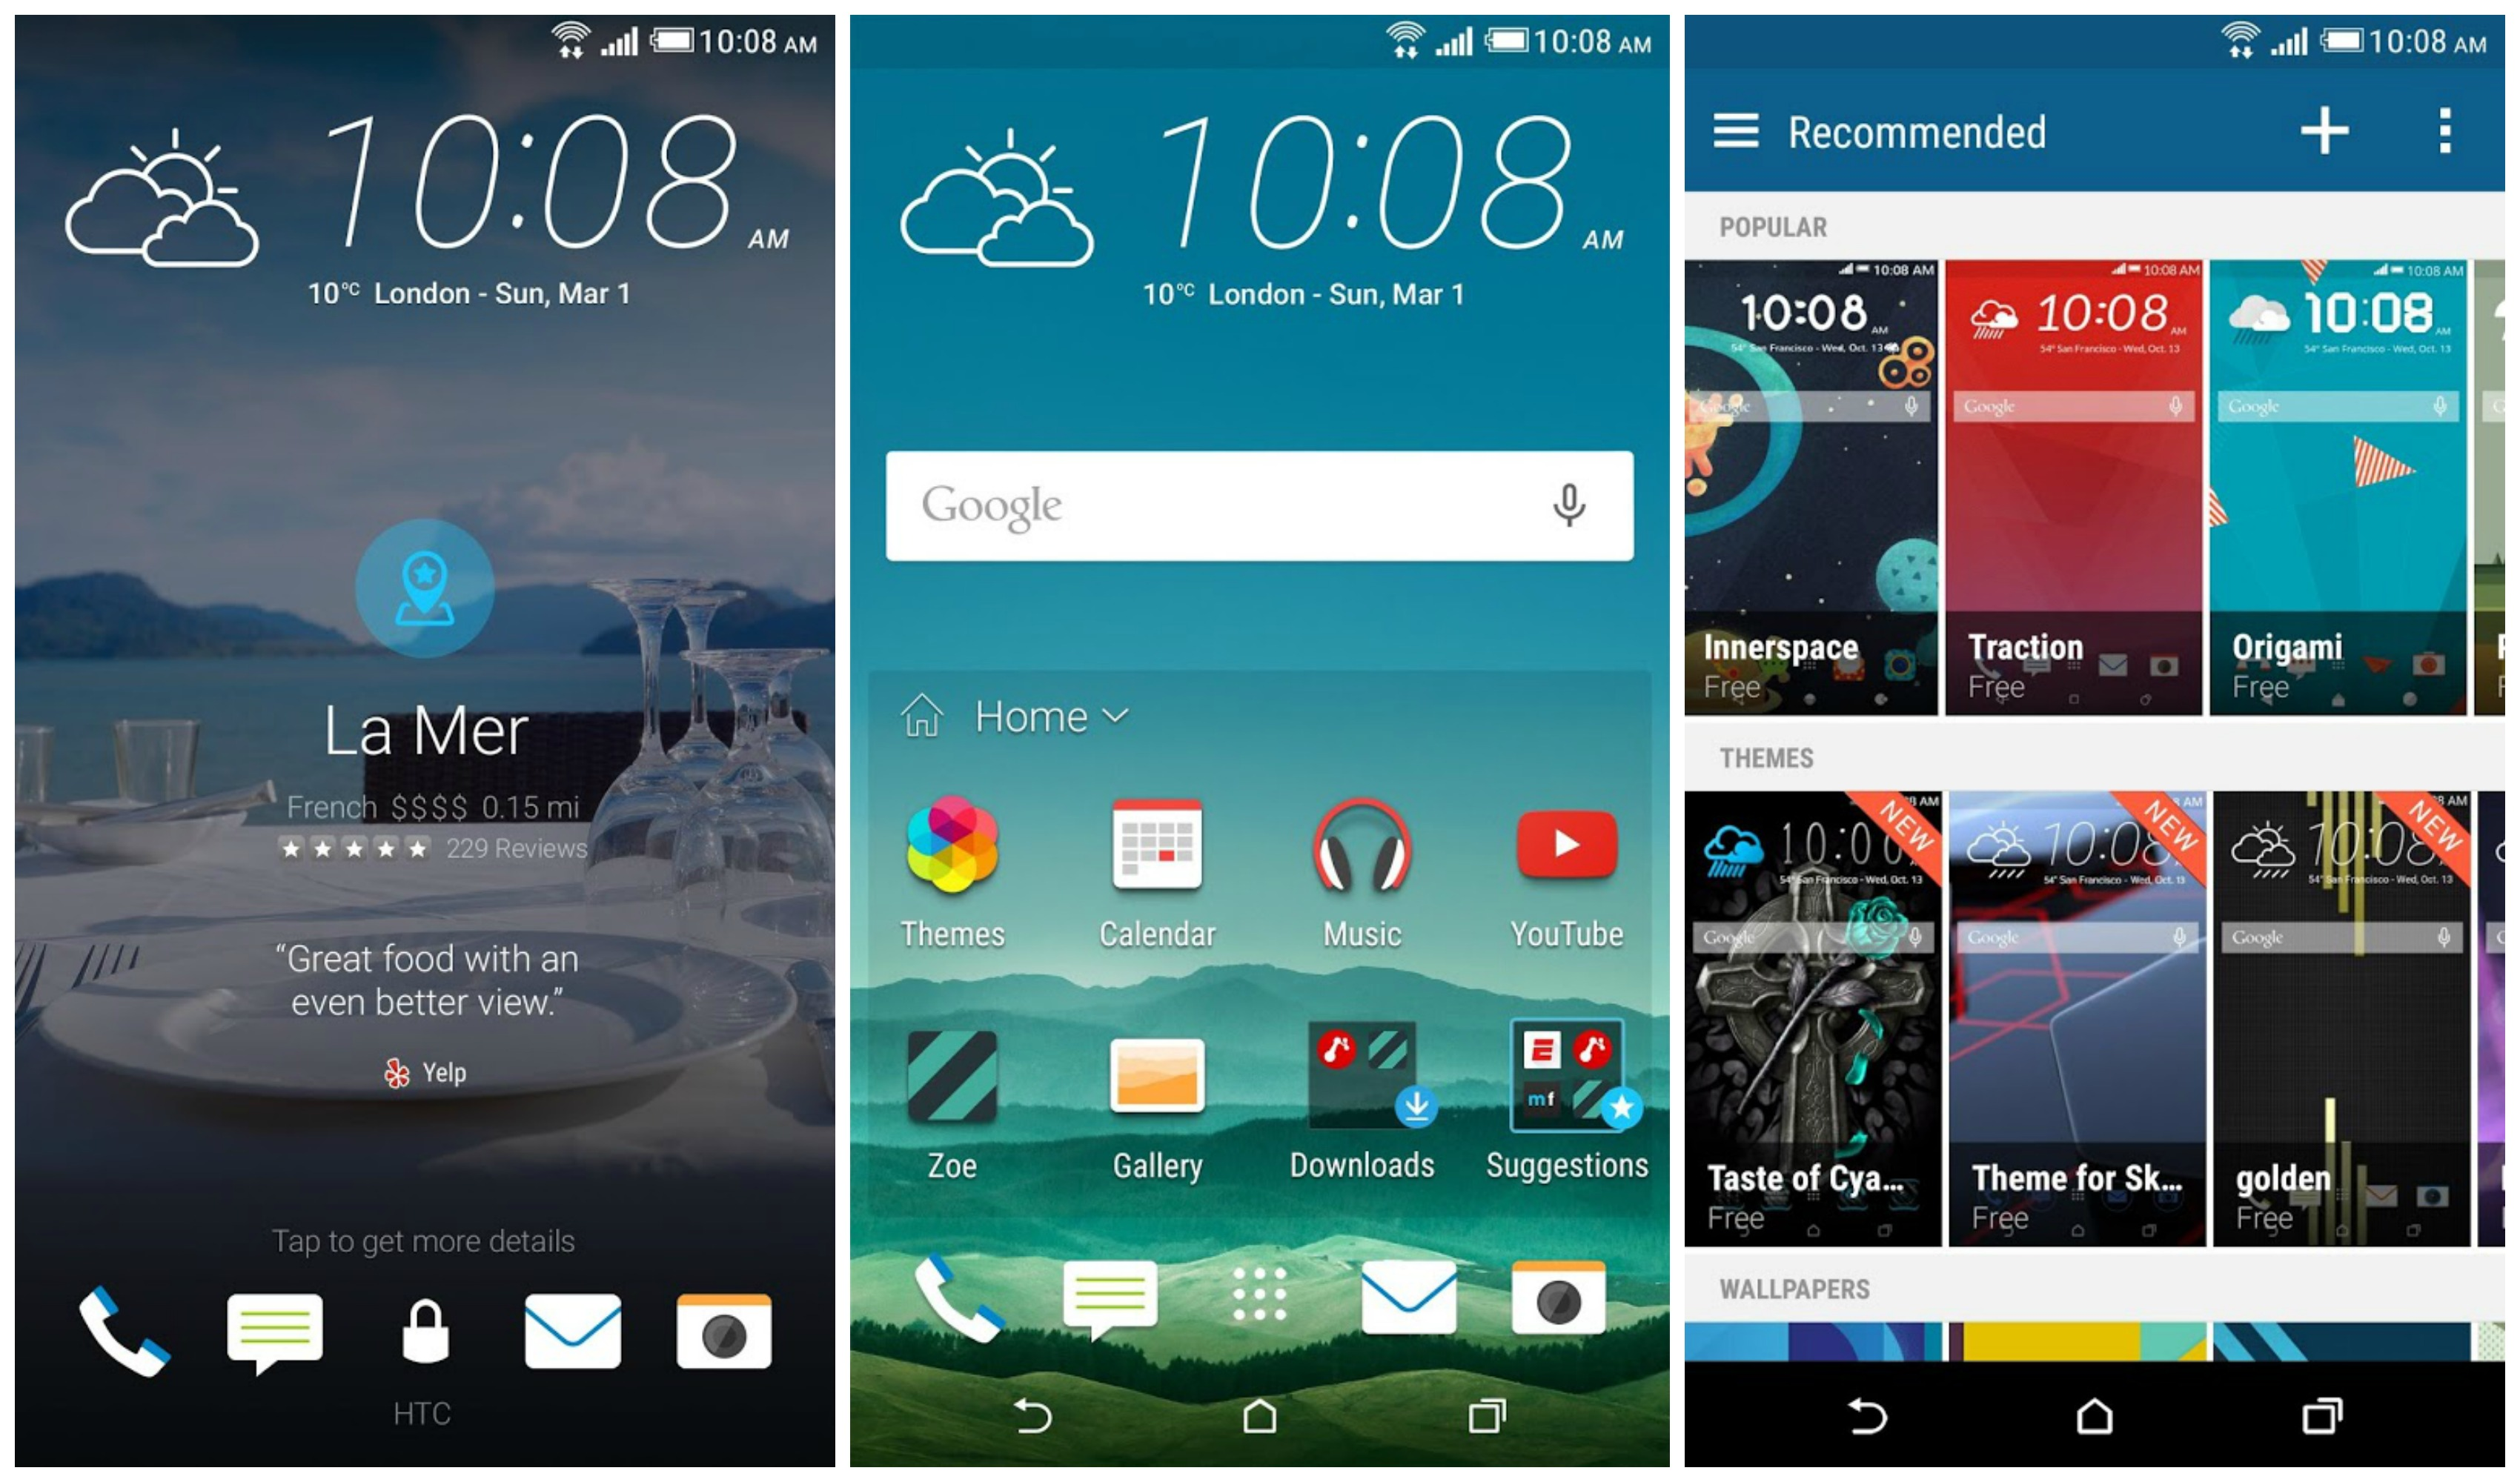 HTC One M9 & Android Lollipop 5.0